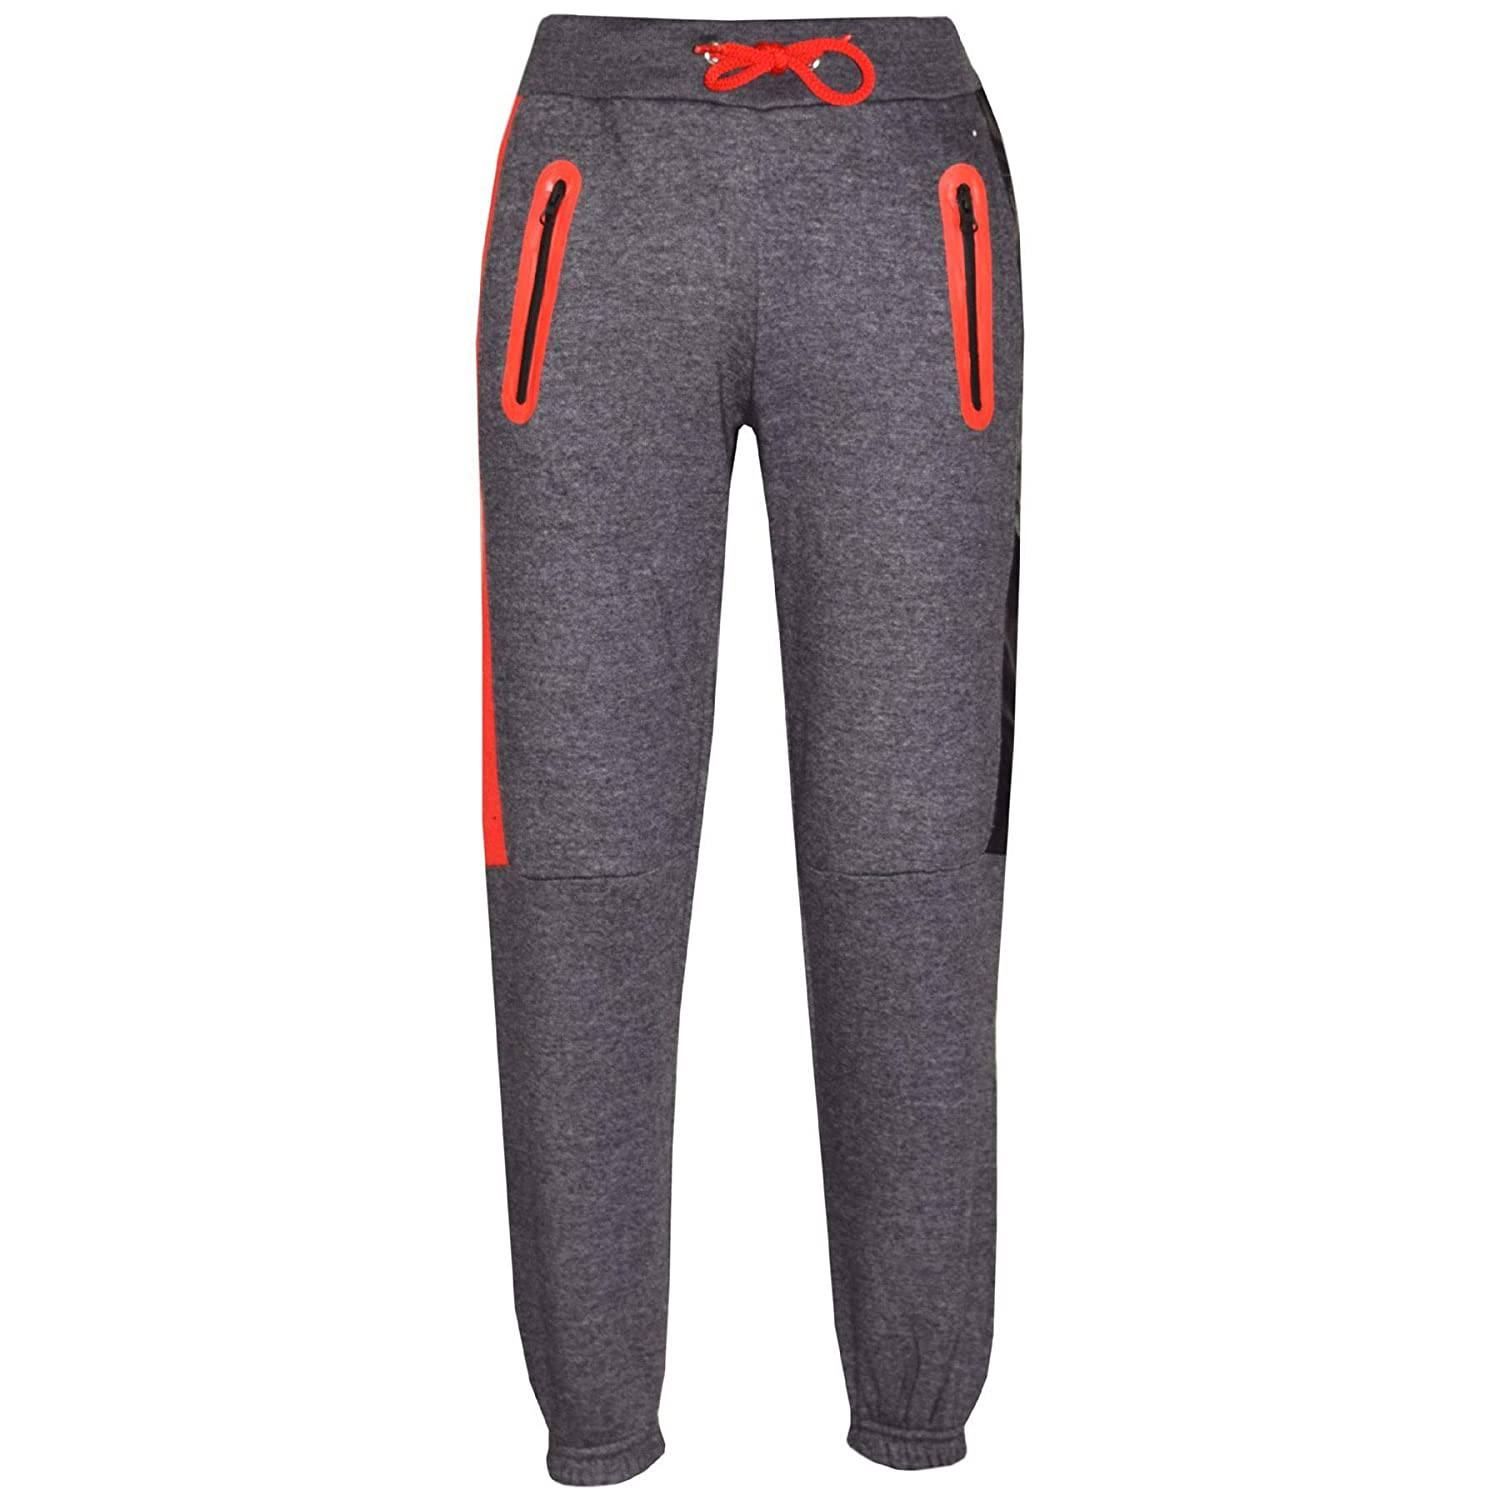 A2Z 4 Kids/® Kids Boys Girls Tracksuit Designers #Selfie Print Charcoal /& Red Zipped Top /& Botom Jogging Suit Joggers Age 5 6 7 8 9 10 11 12 13 Years